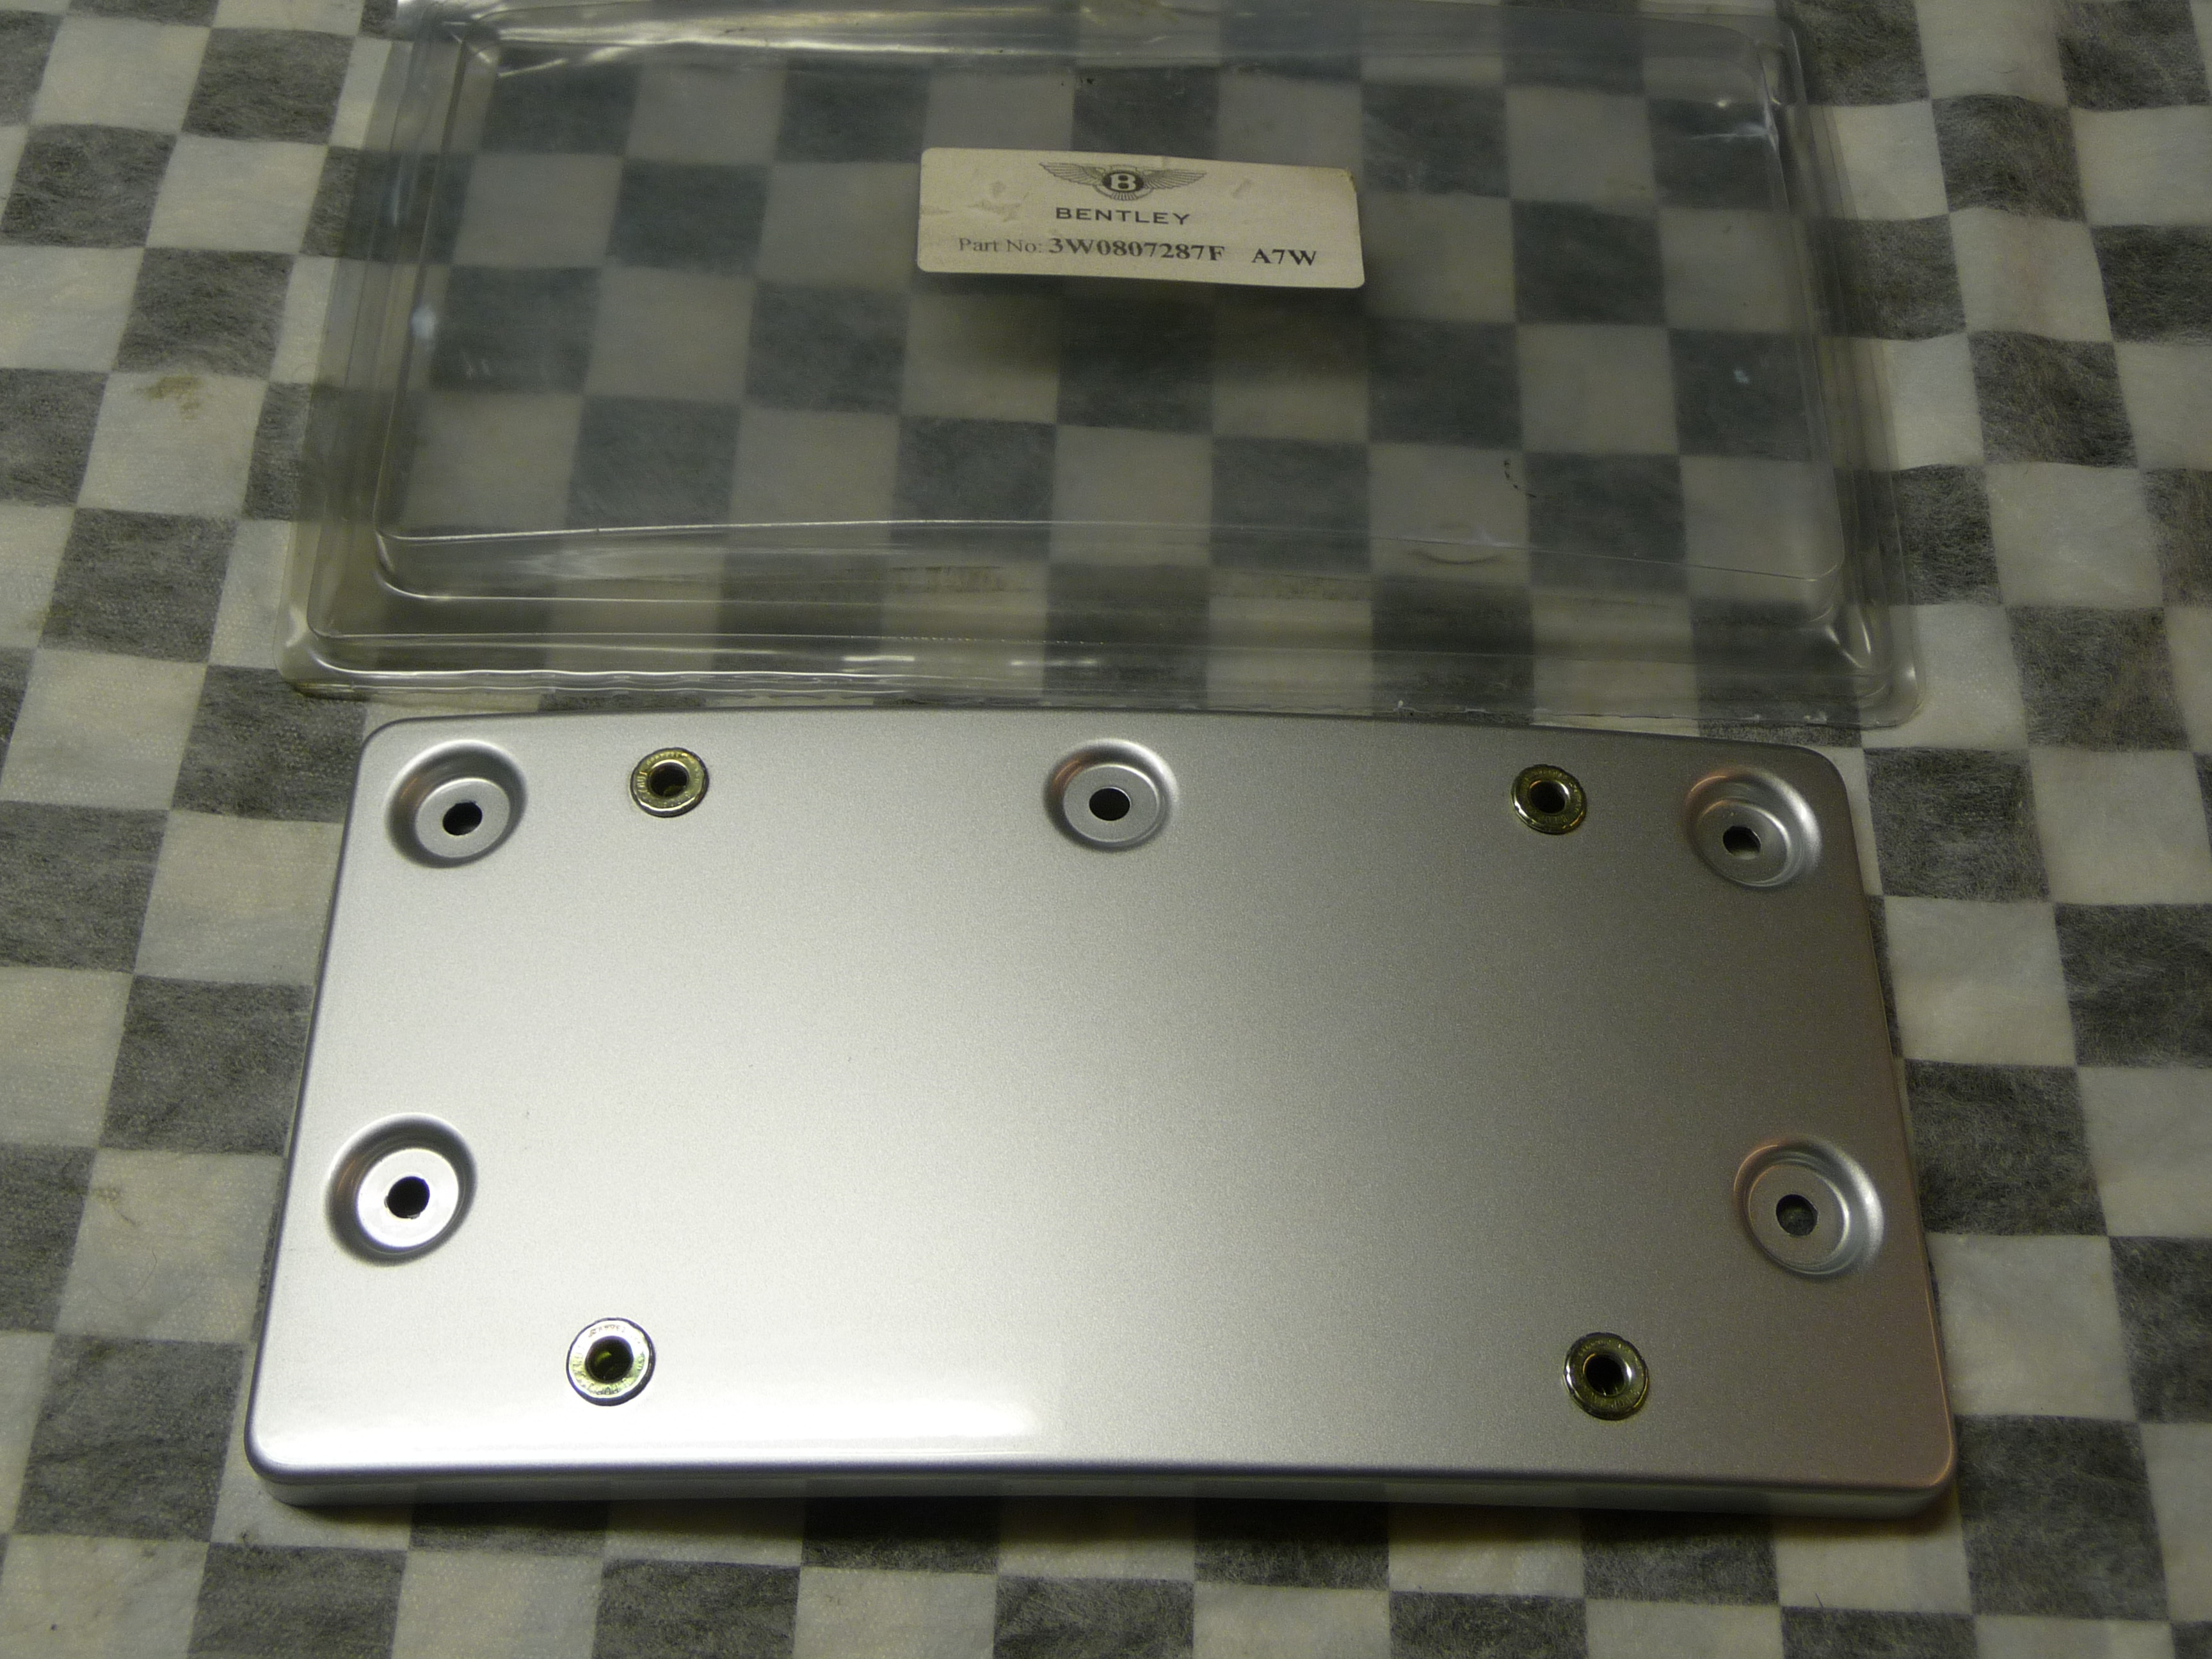 Bentley Continenta GT GTC Front Bumper License Plate Moulding 3W0807237 OEM OE